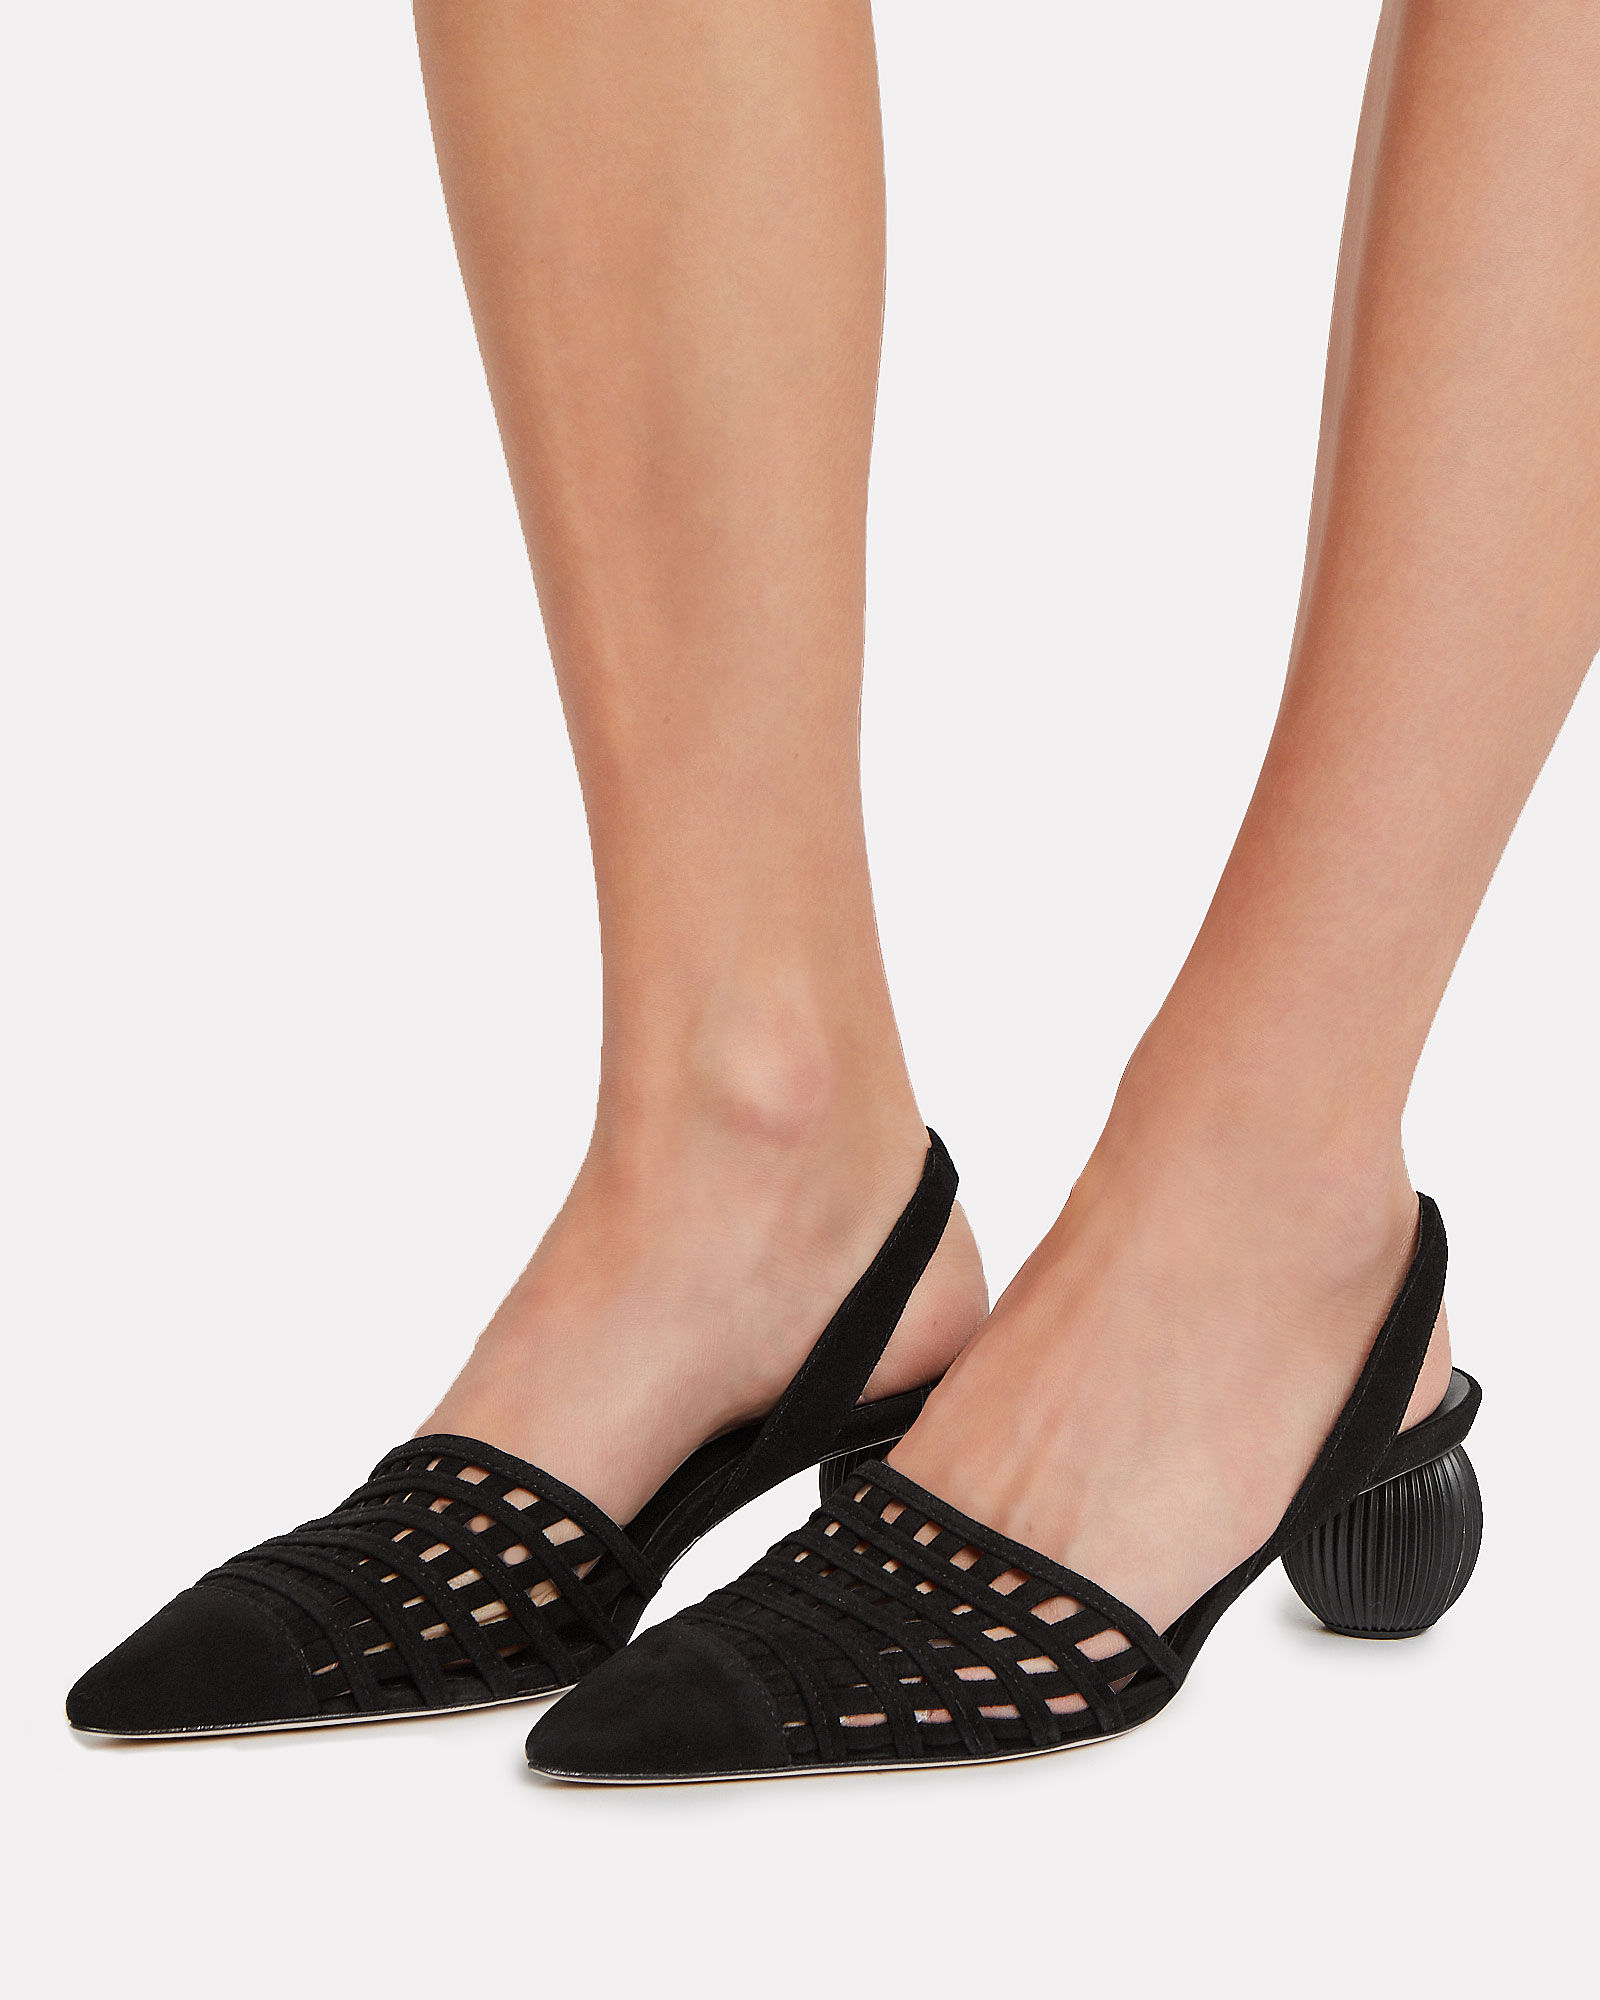 Keri Ball Heel Pumps, BLACK, hi-res